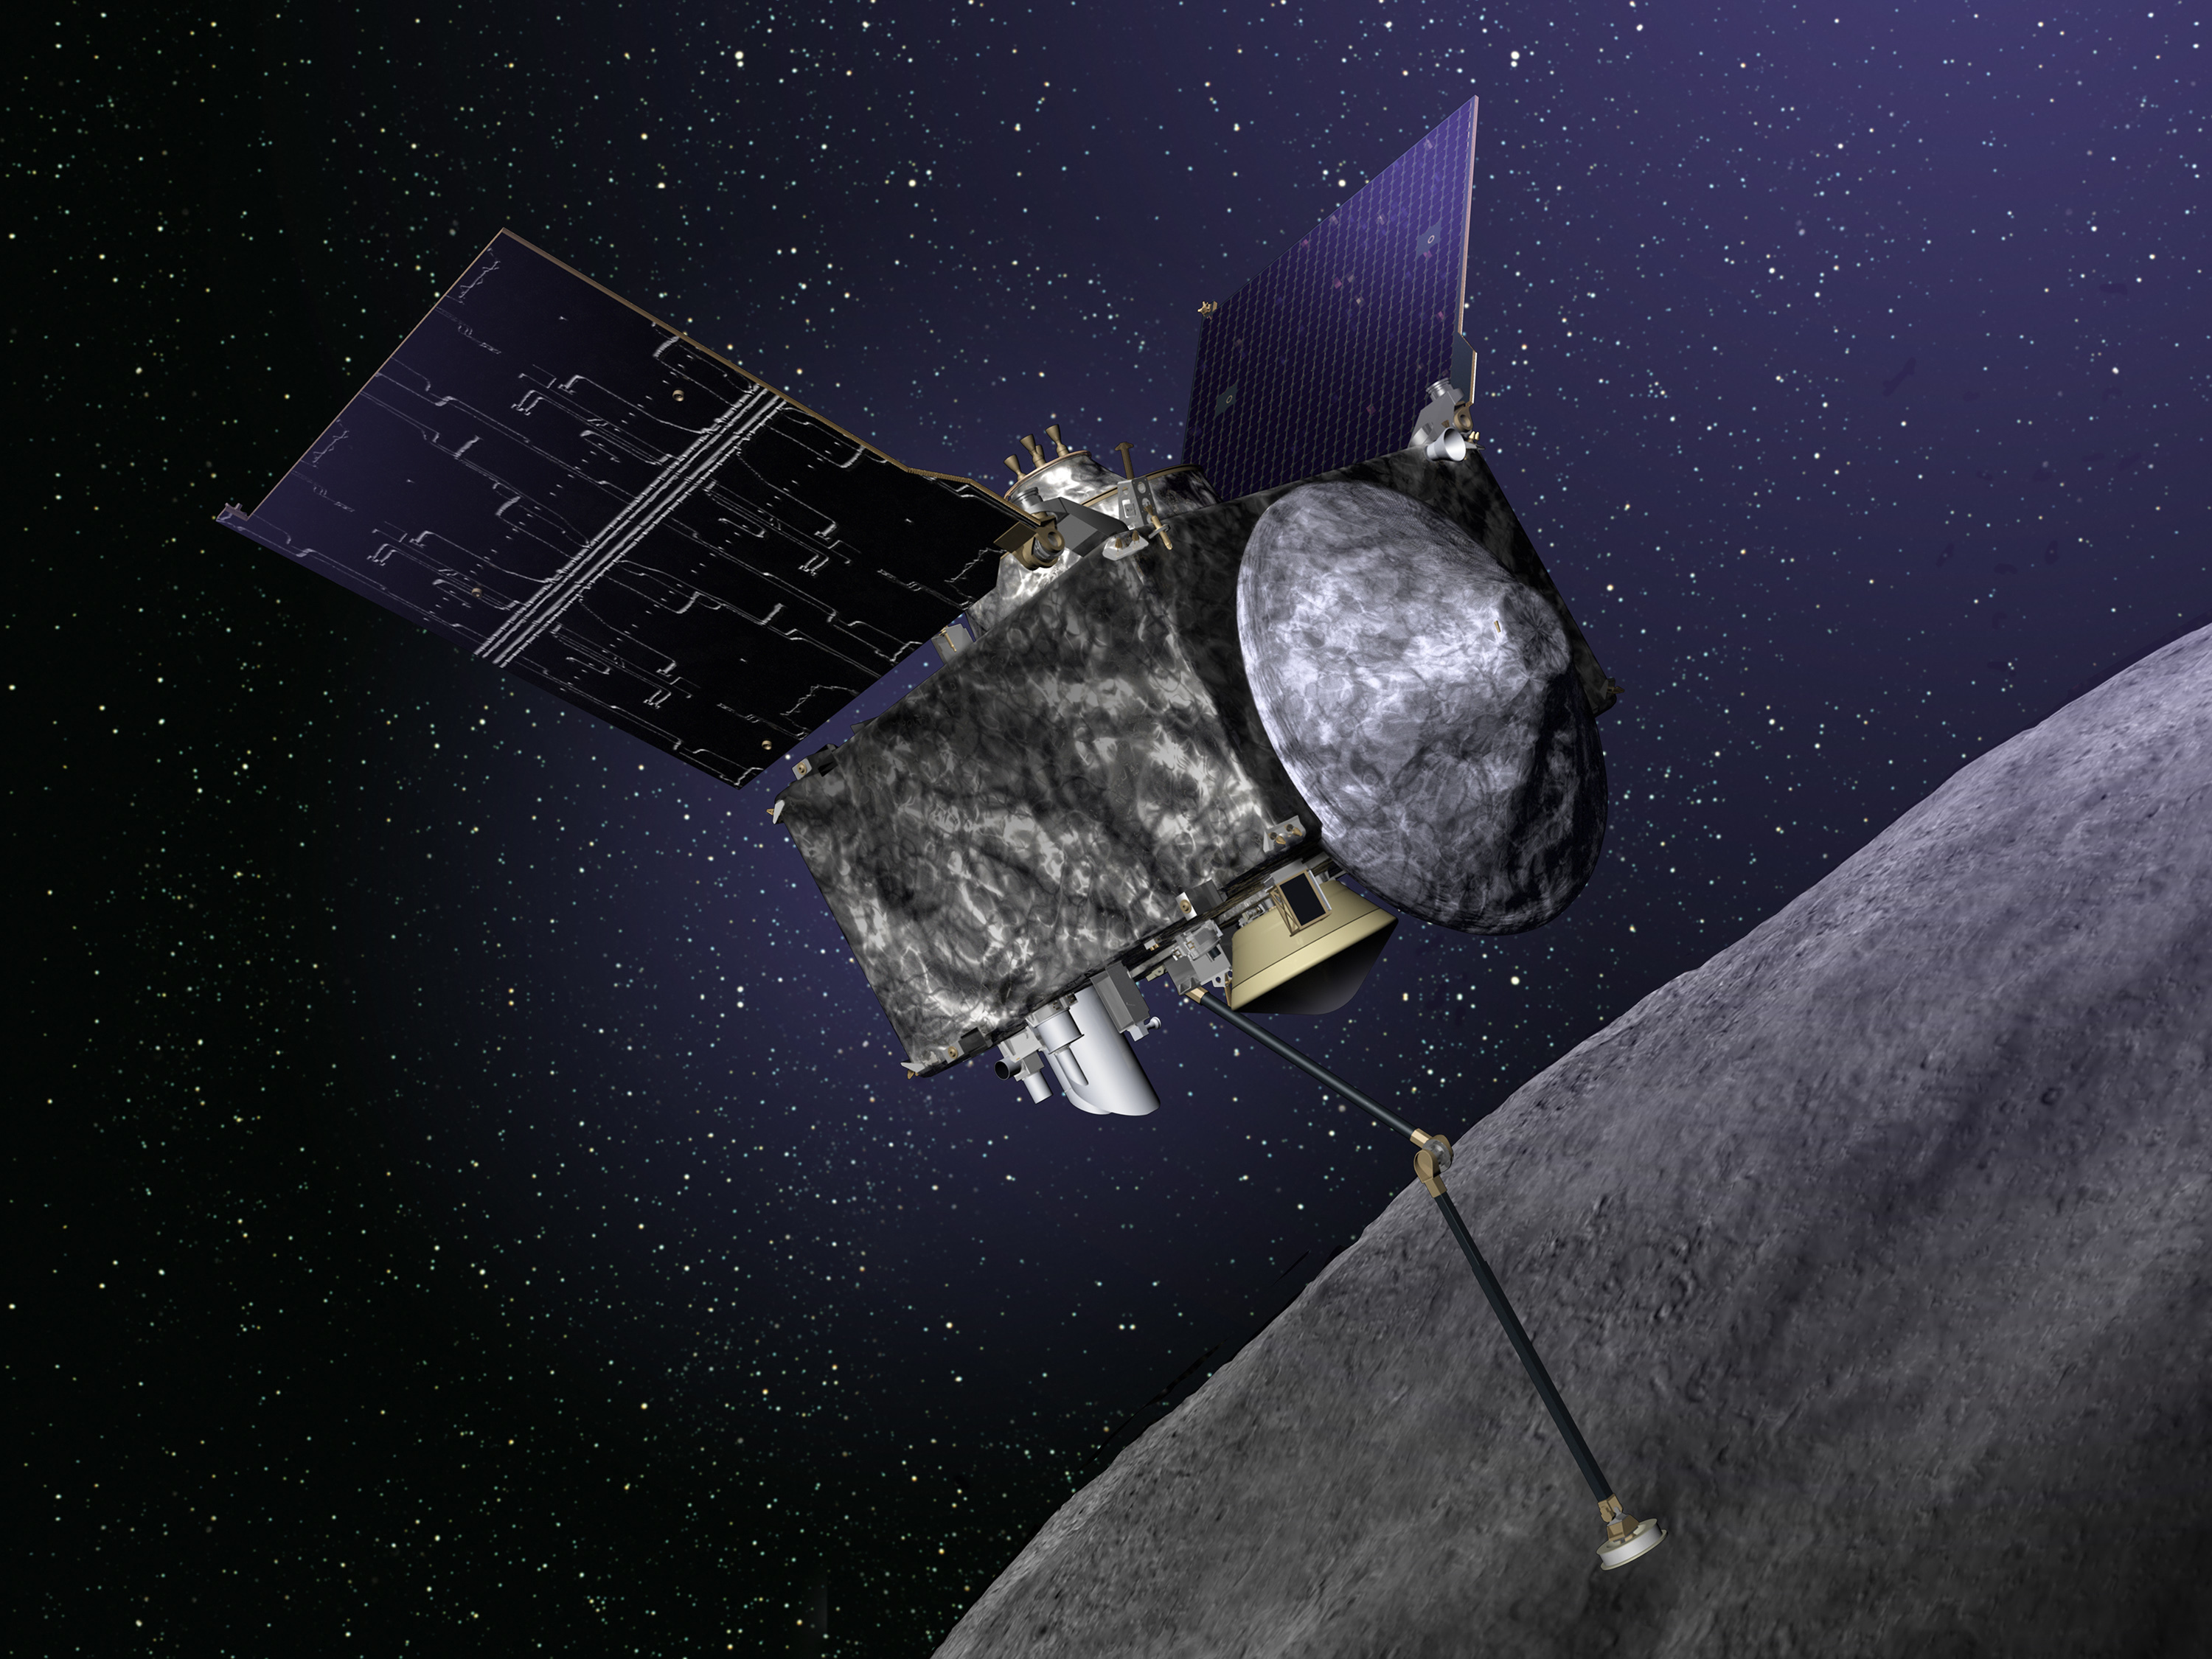 osiris-rex-illustration-lm-version-